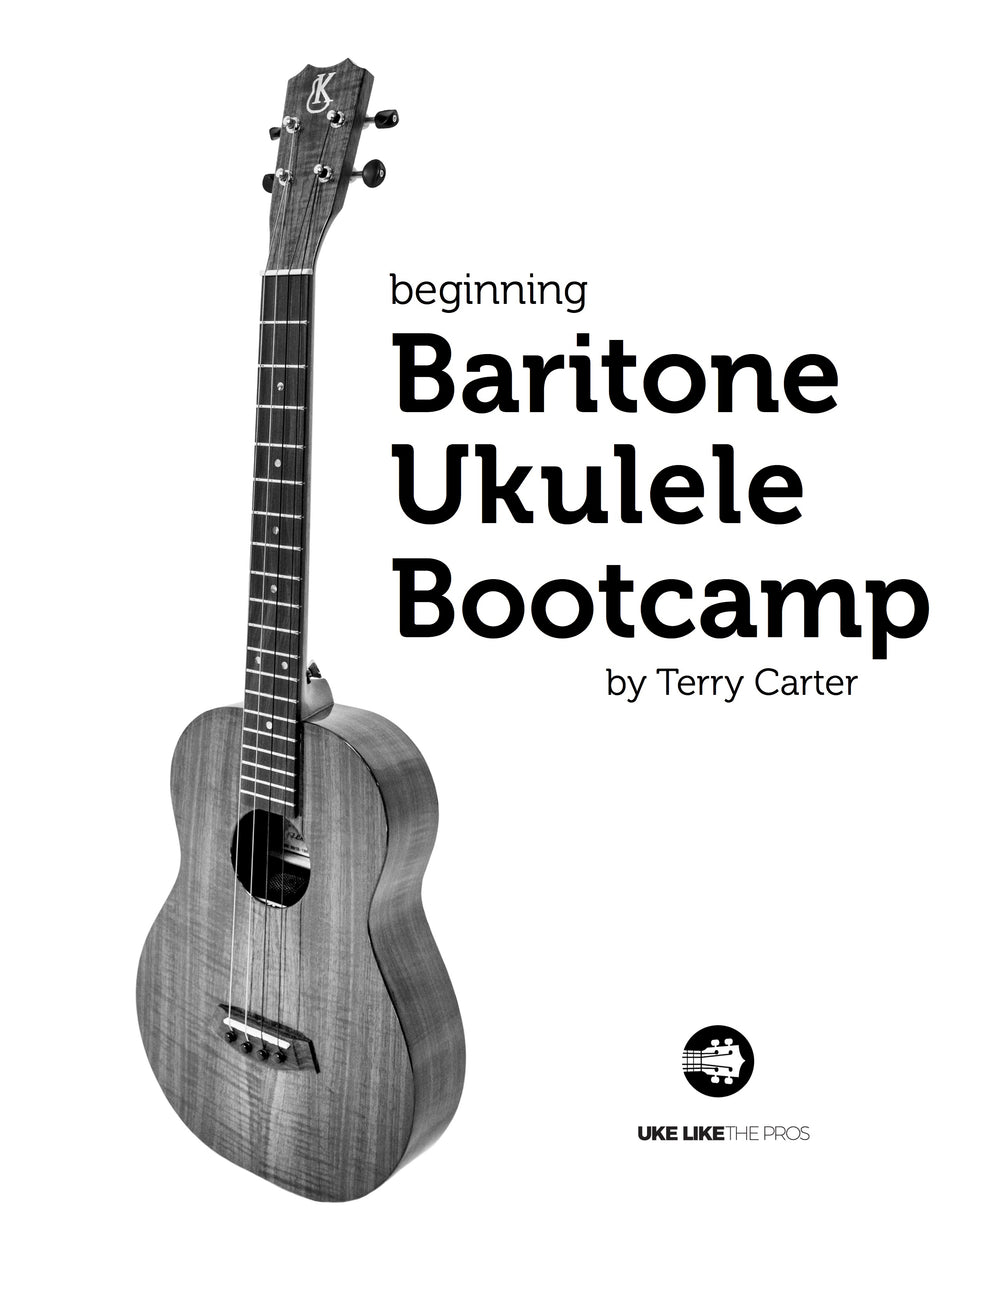 Beginning Baritone Ukulele Bootcamp Course Book For ULTP Members Only